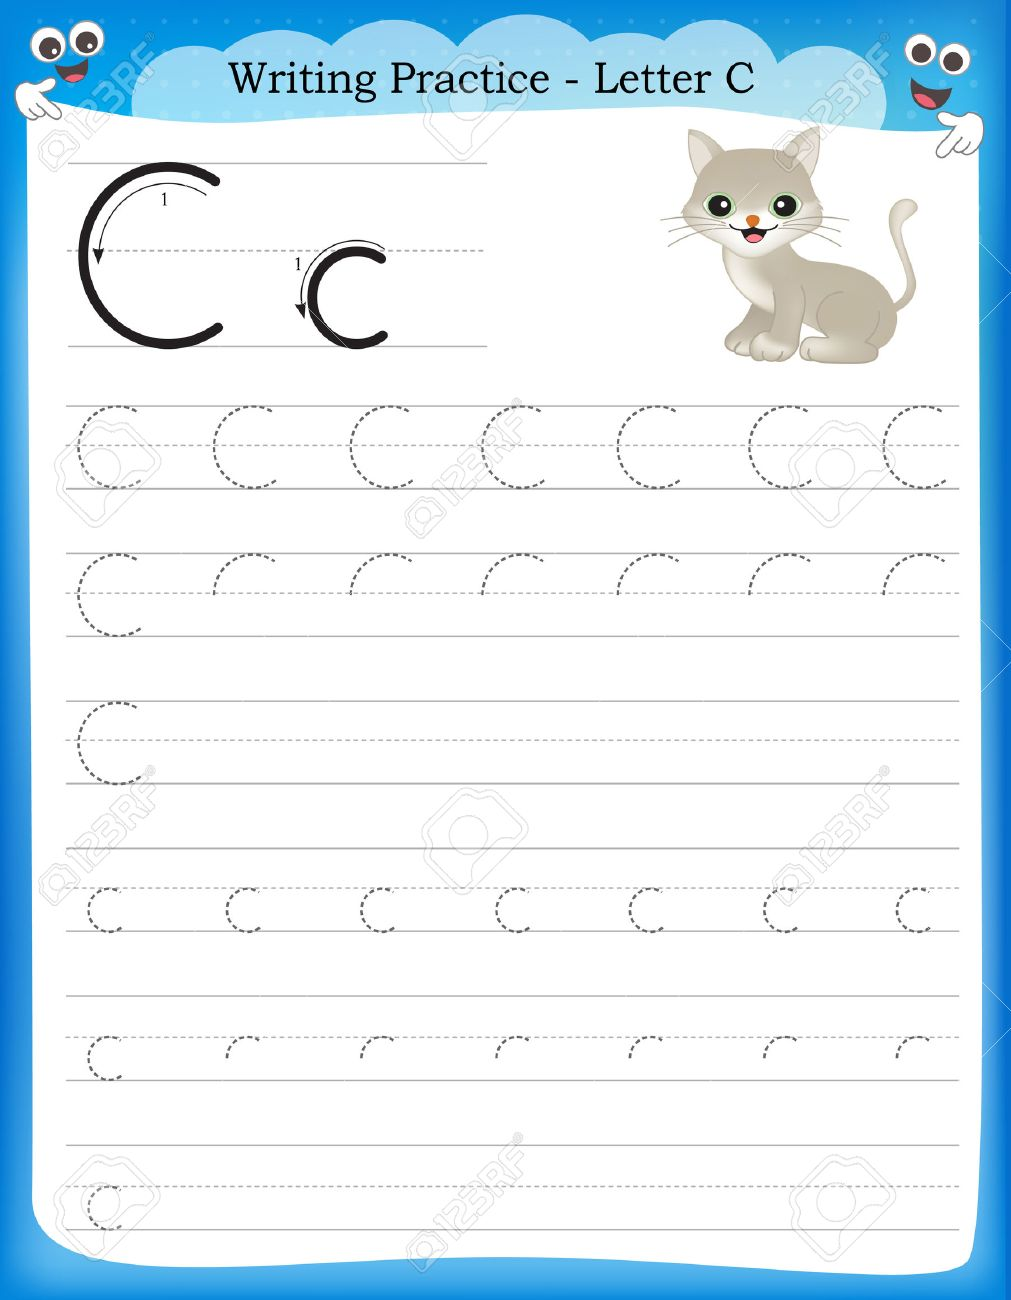 Worksheet Preschool Writing Practice writing practice letter c printable worksheet for preschool vector kindergarten kids to improve basic skills